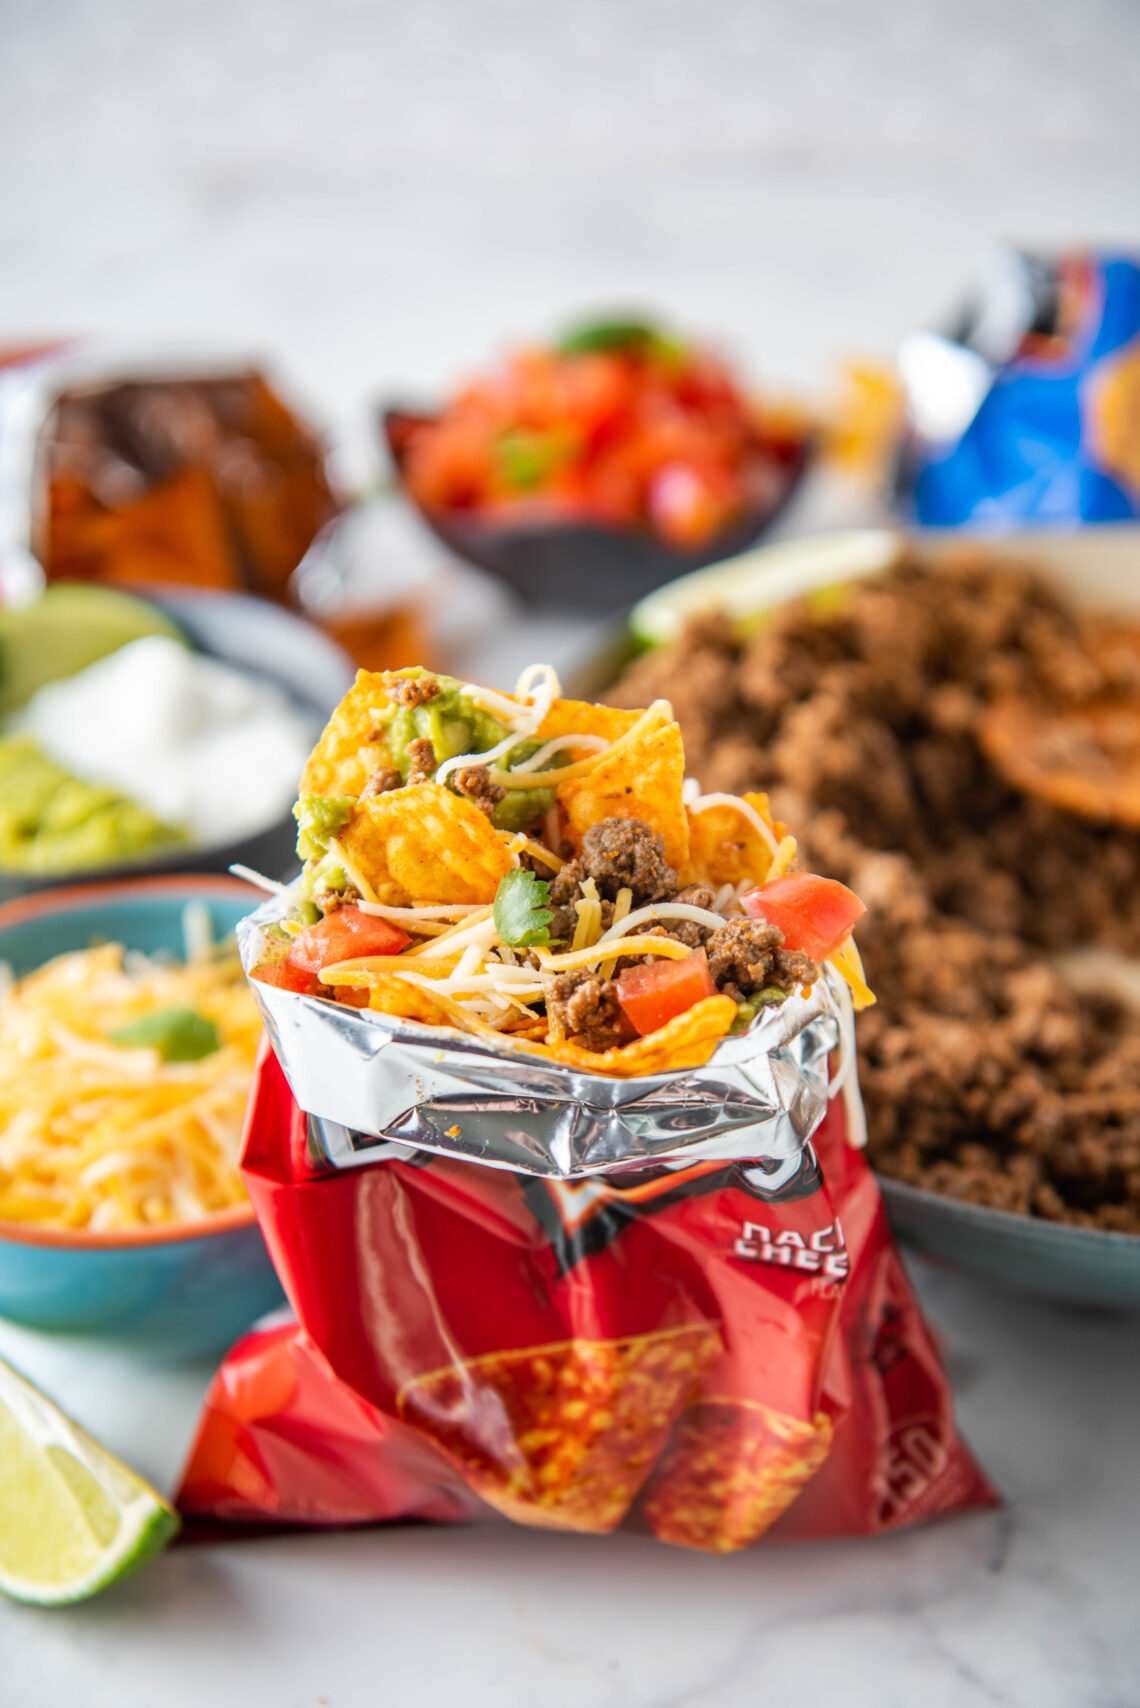 An open Dorito bag contains all the ingredients for walking tacos